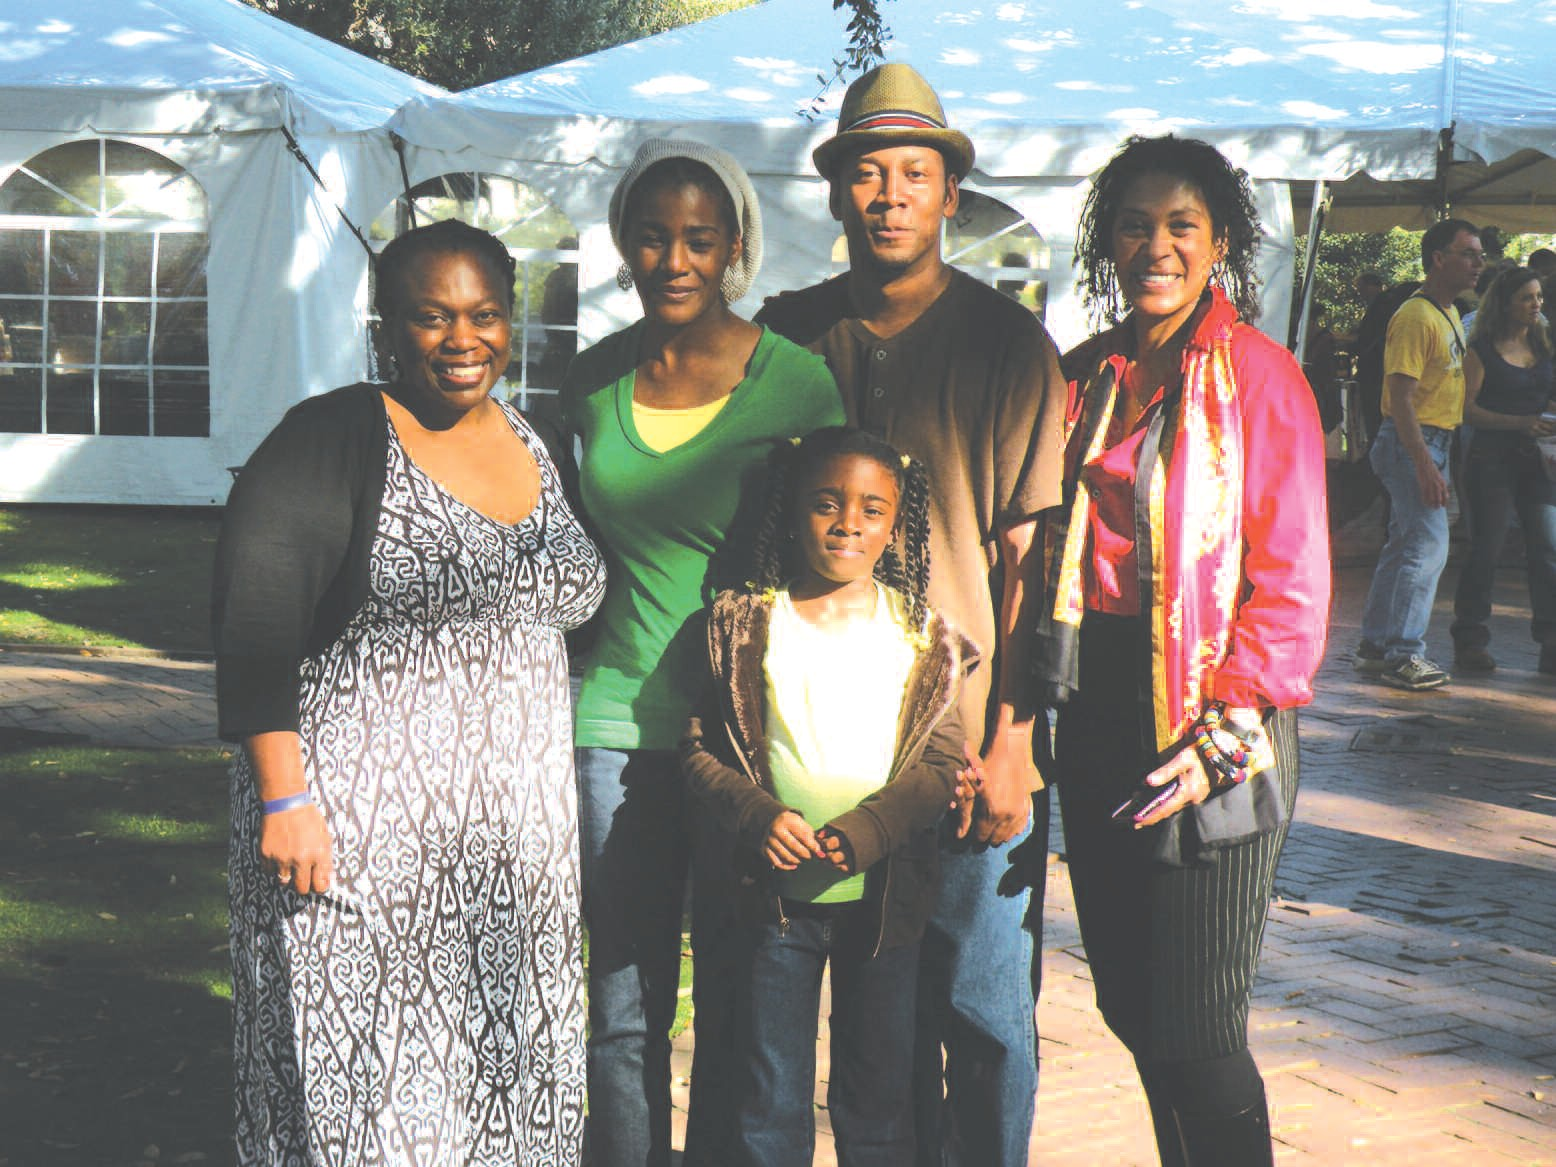 Tarshia L. Stanley (left) is pictured with festival attendees and Tina McElroy Ansa, local publisher, Down South Press, and author.